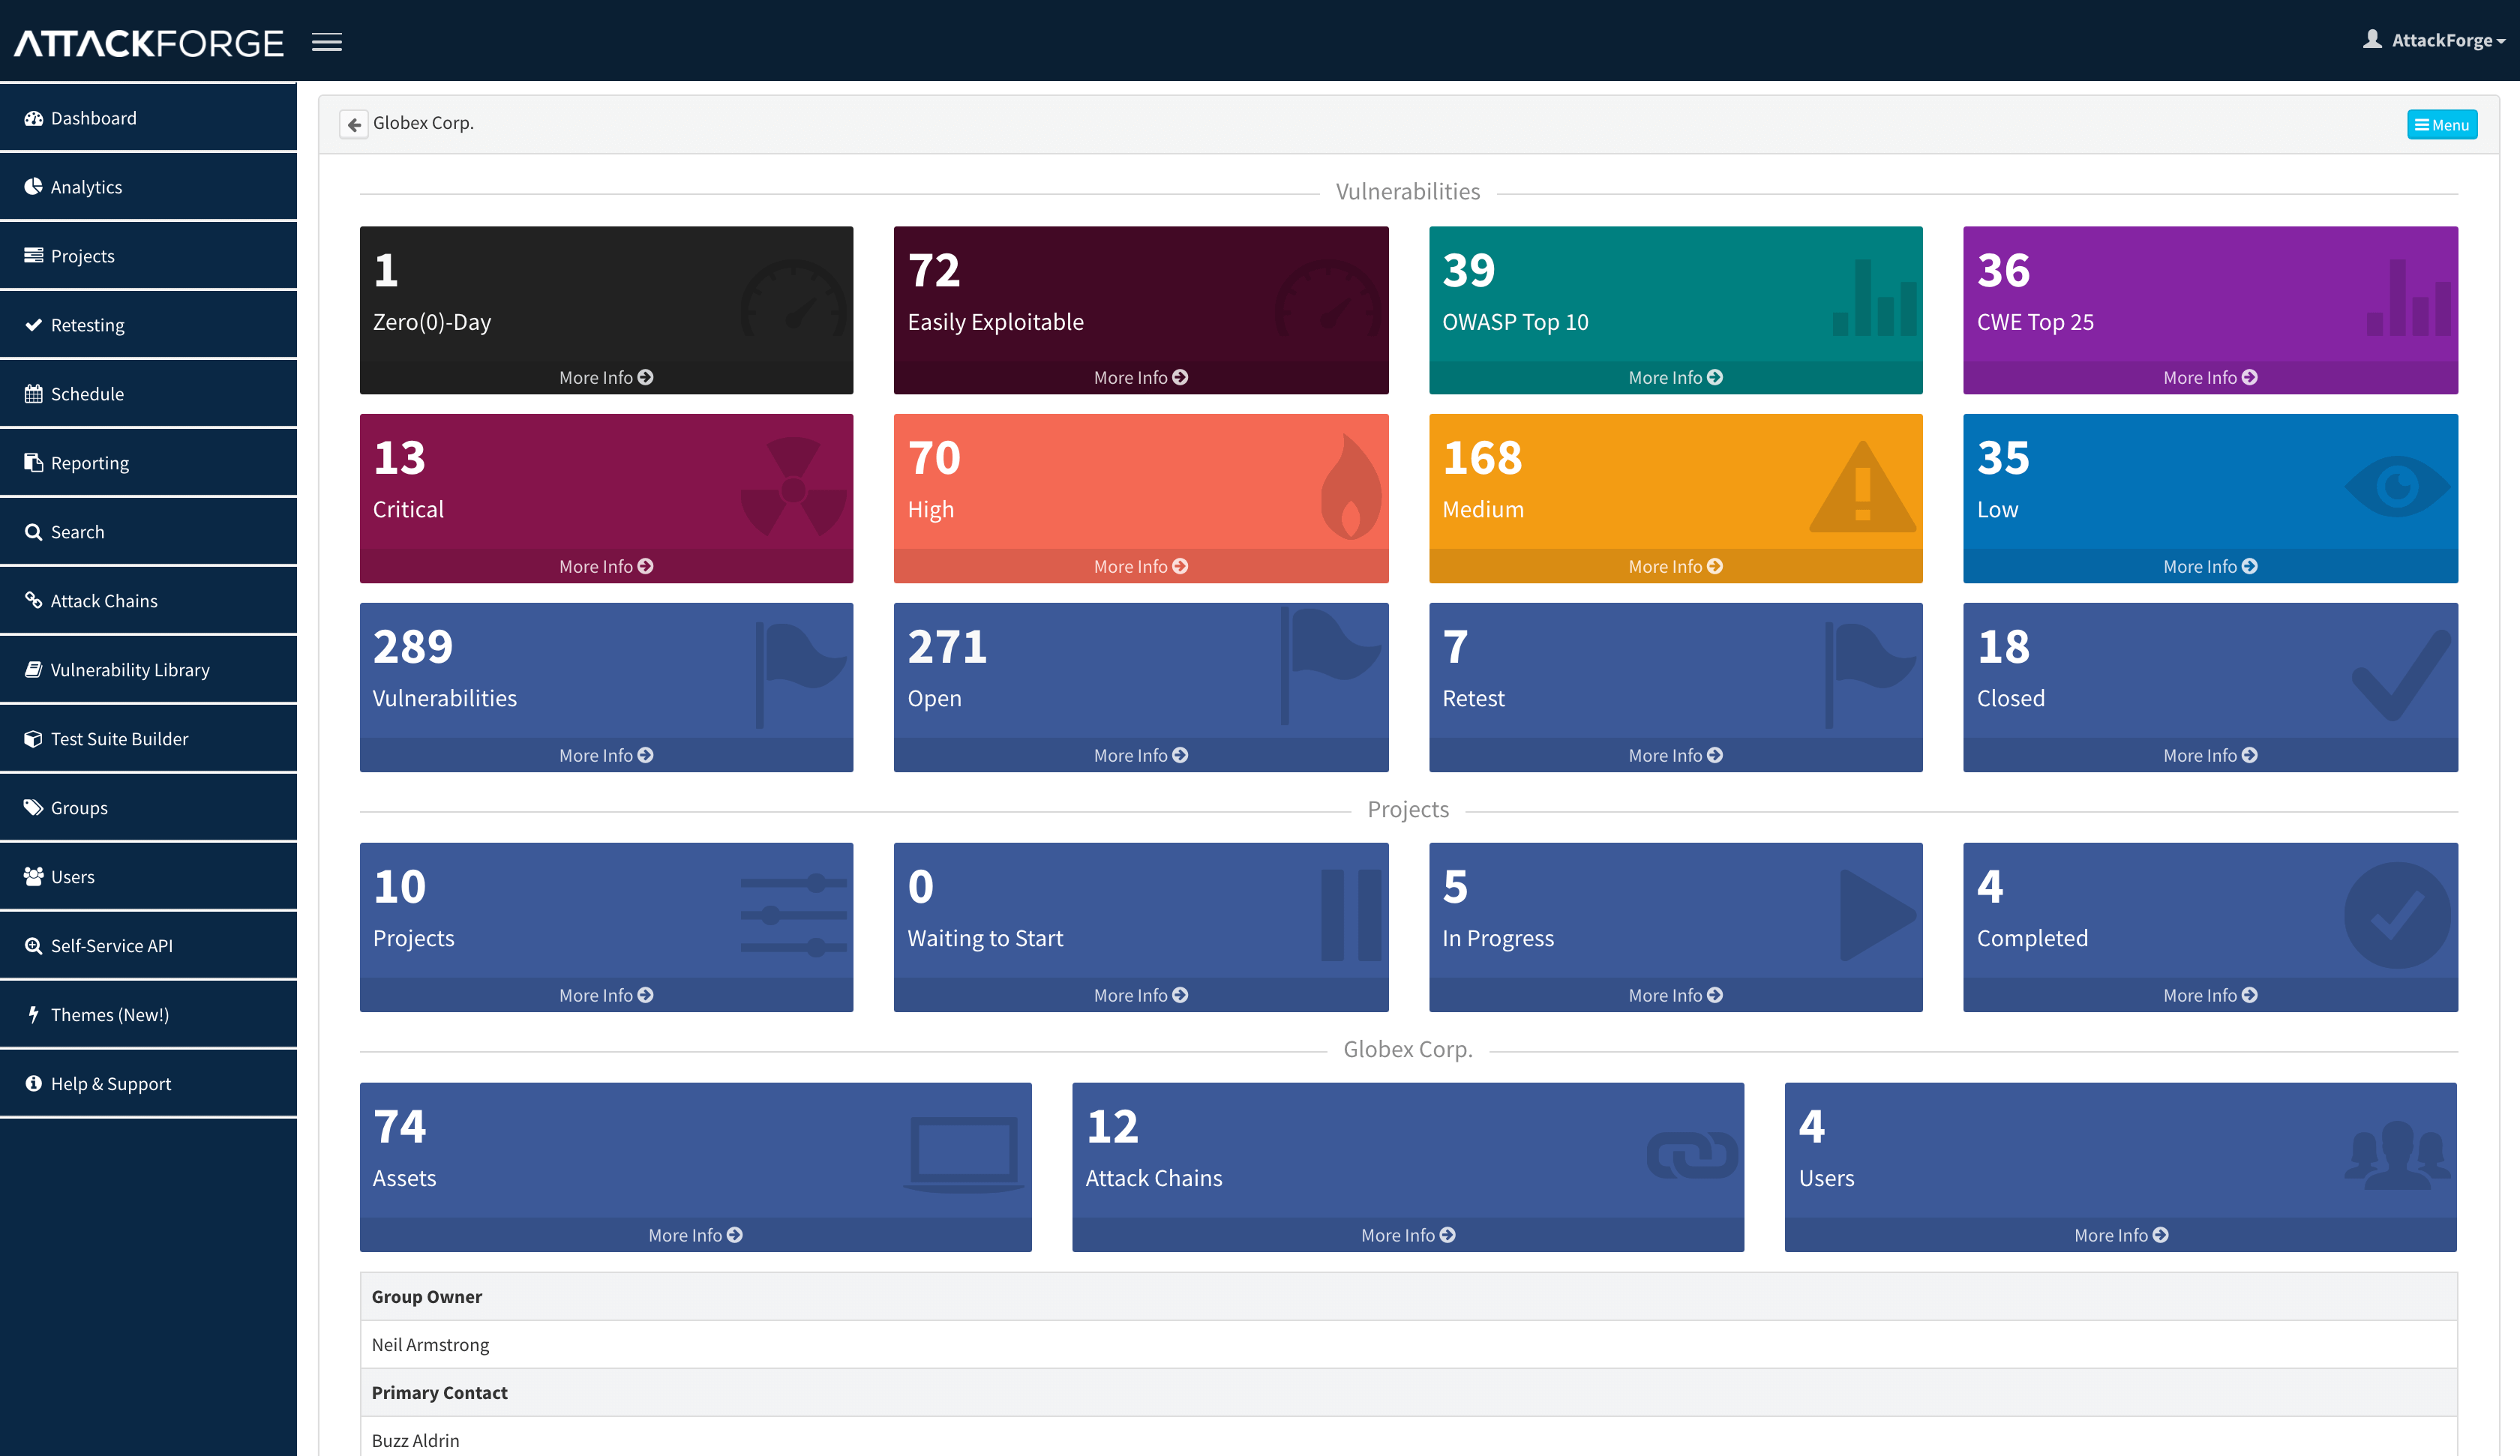 Group Dashboard